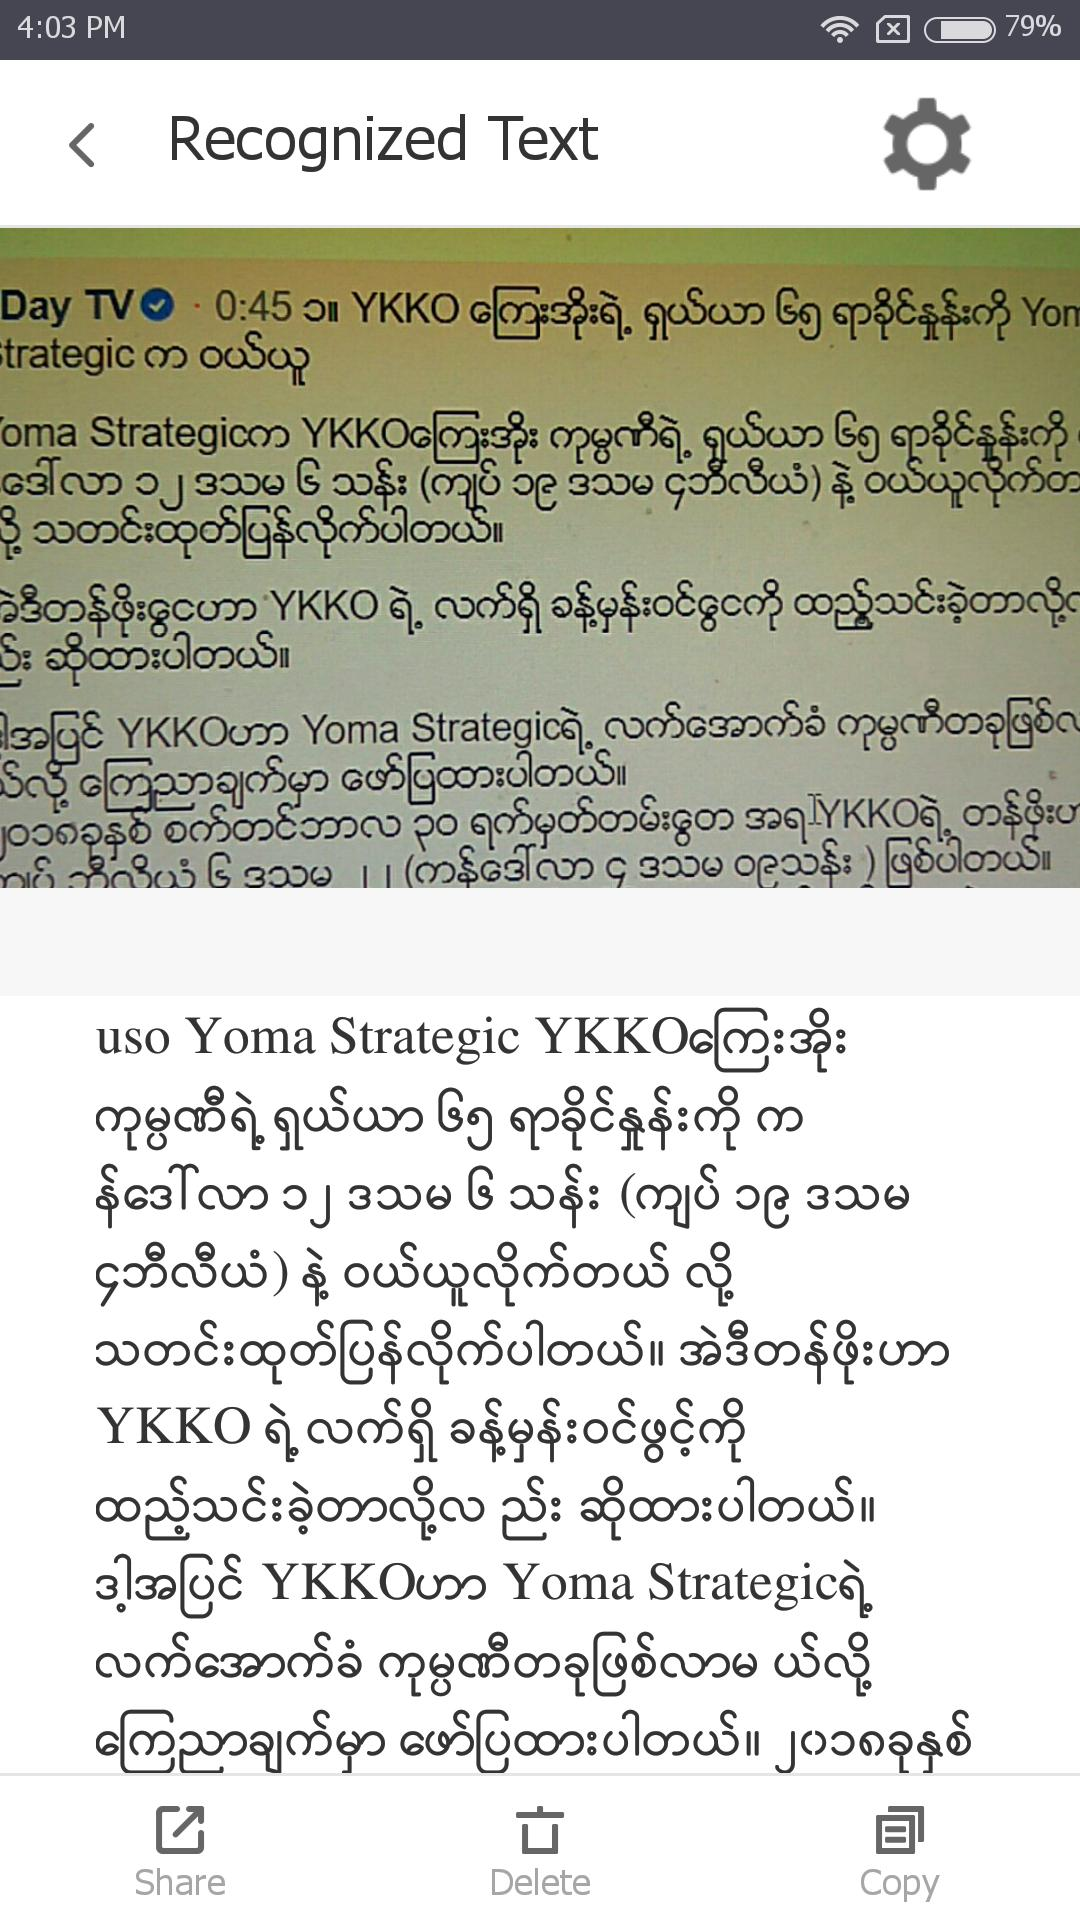 Myanmar OCR for Android - APK Download